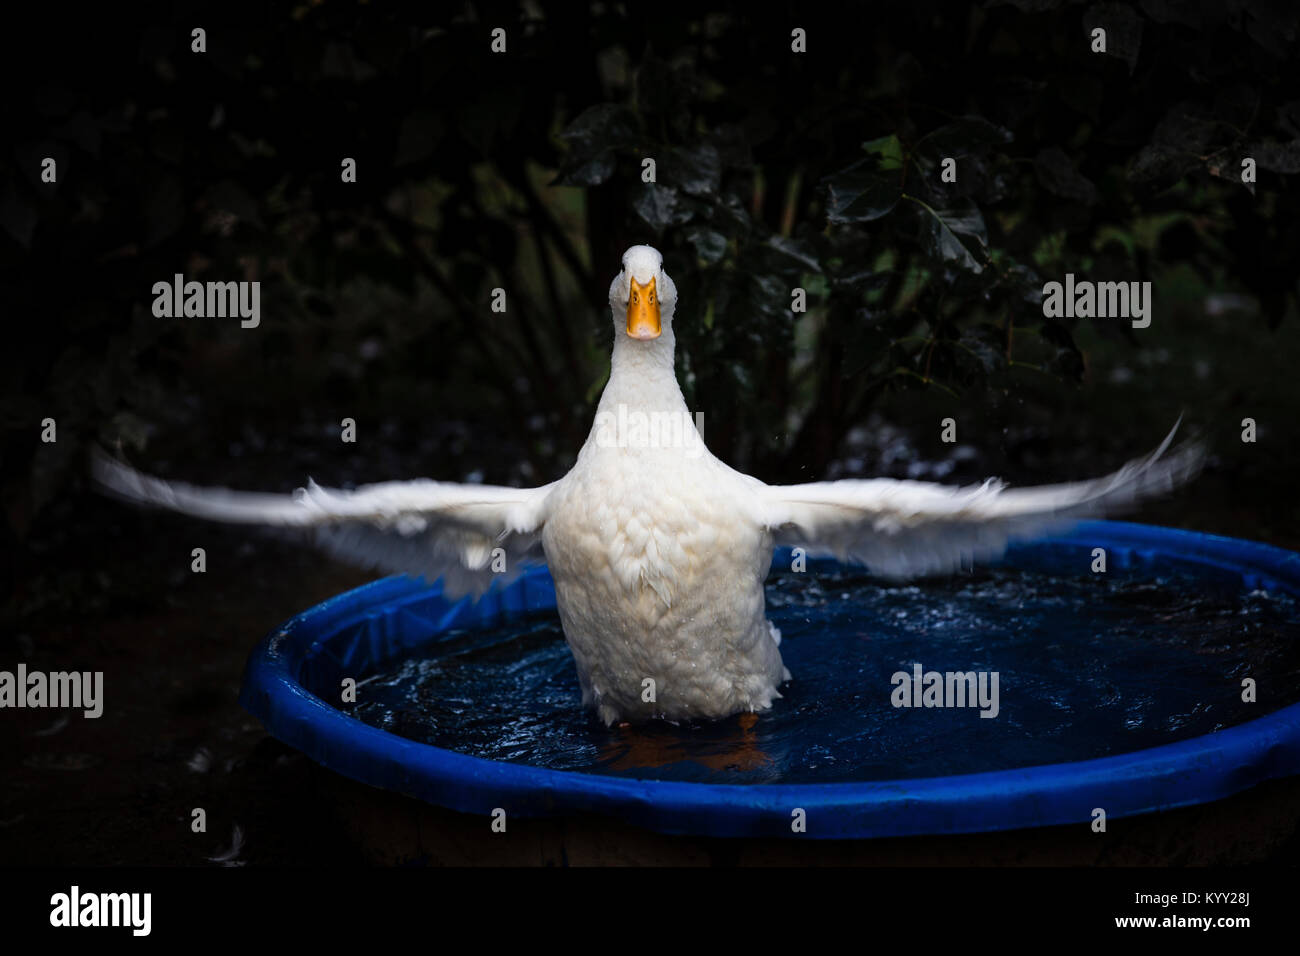 White duck flapping wings in wading pool - Stock Image